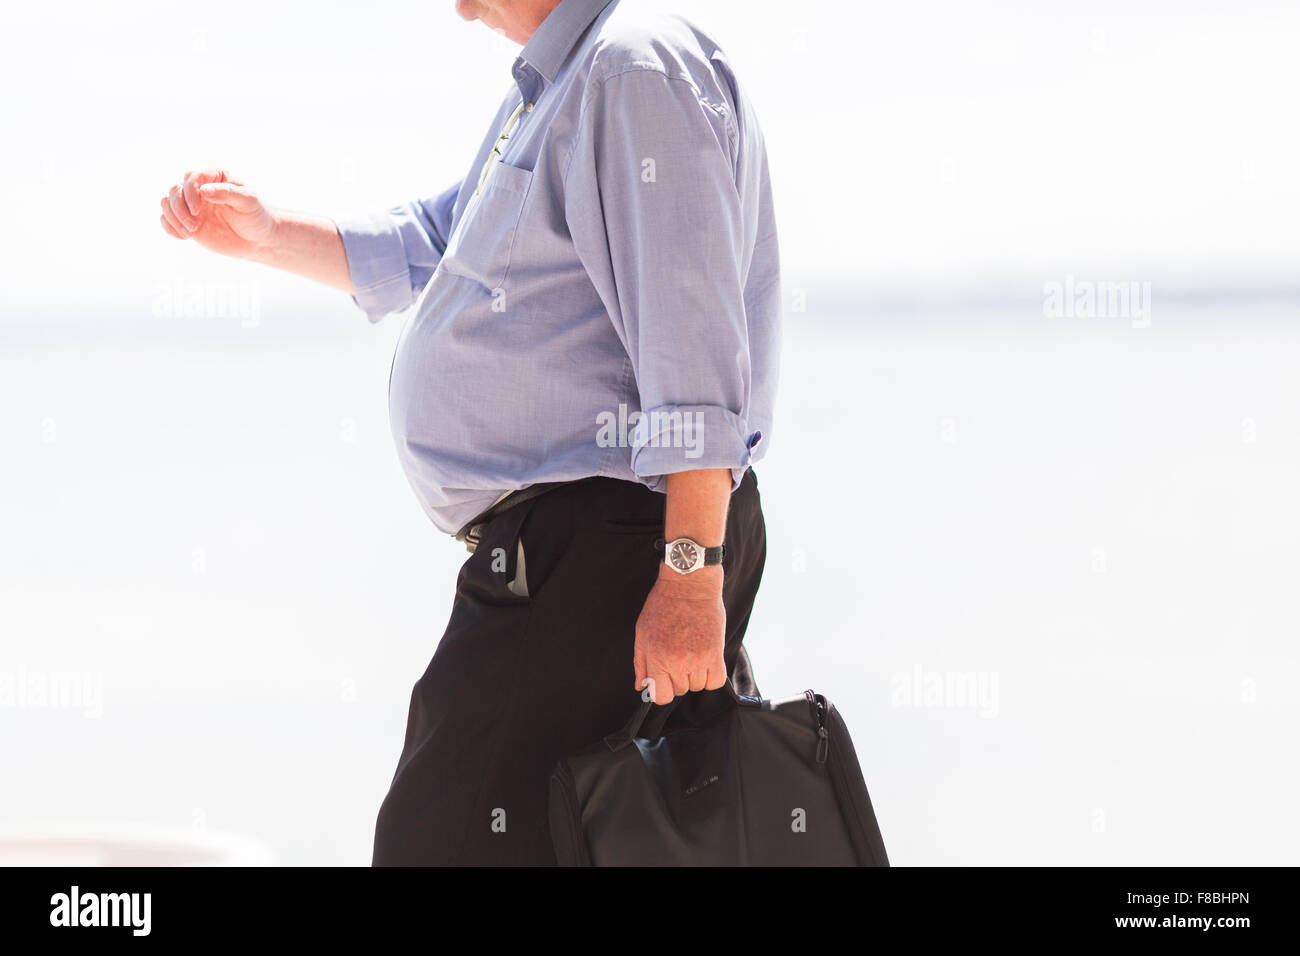 Overweight man. - Stock Image